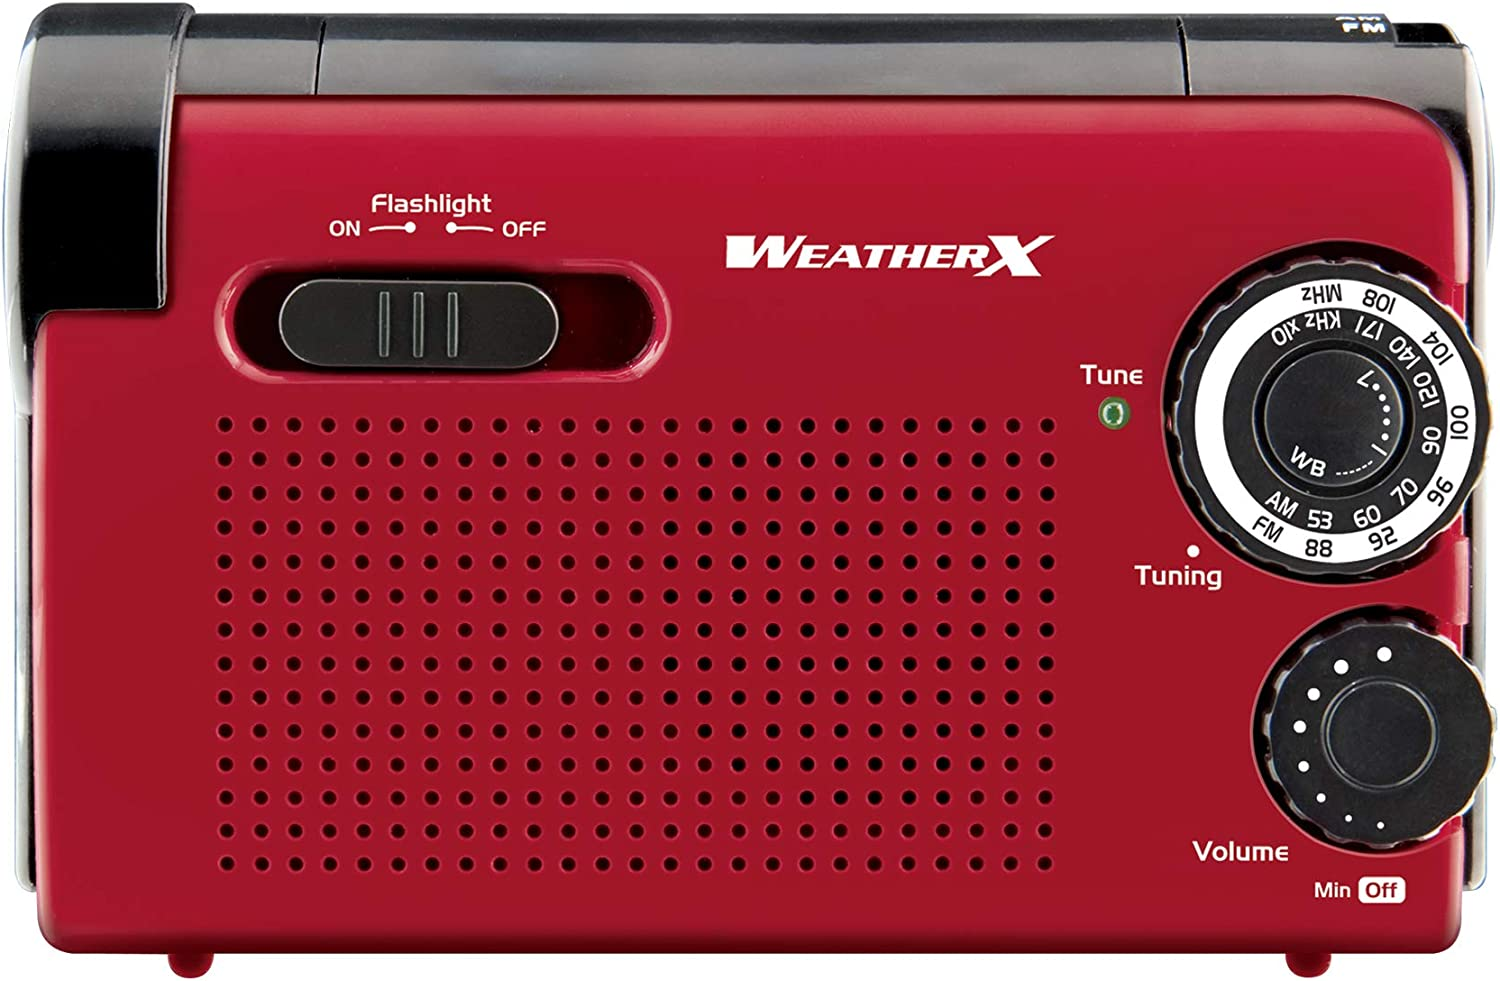 Weather XWR182R NOAA Weather Band and Radio Flashlight with Hand Crank Power